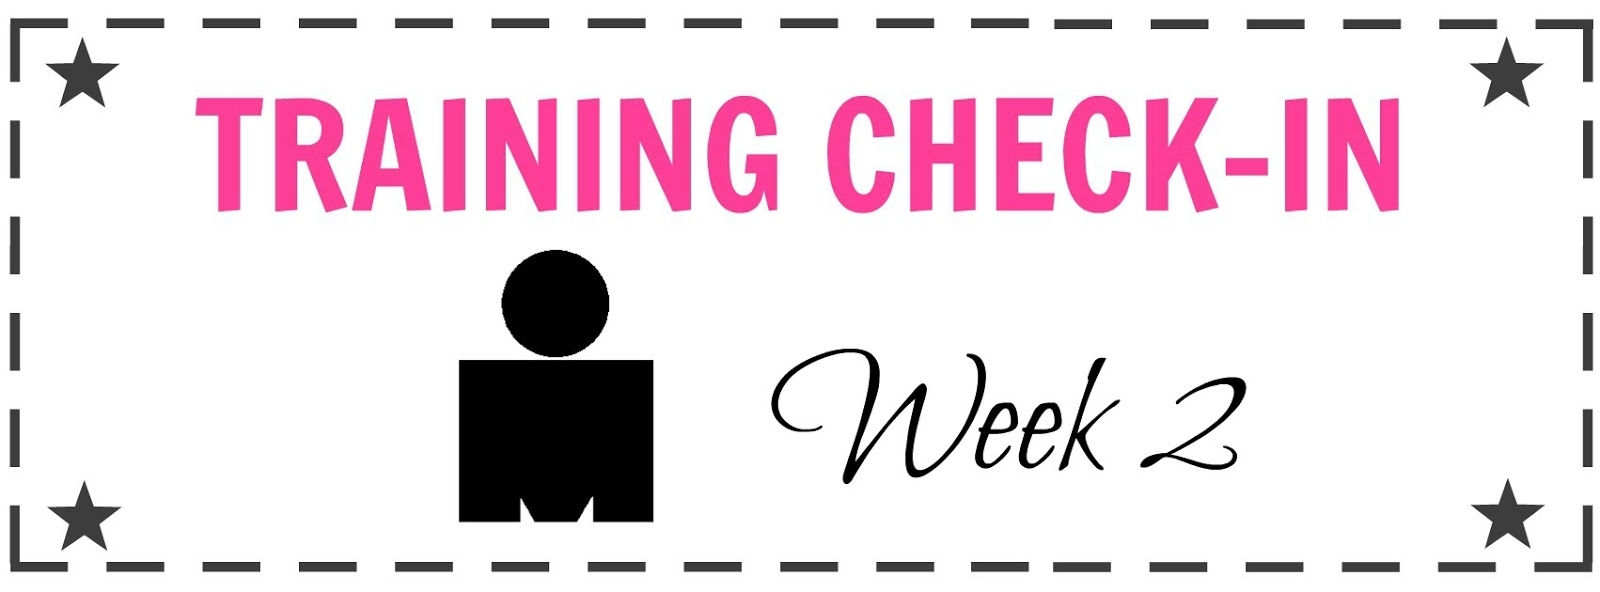 Training Check-in: Ironman Week 2